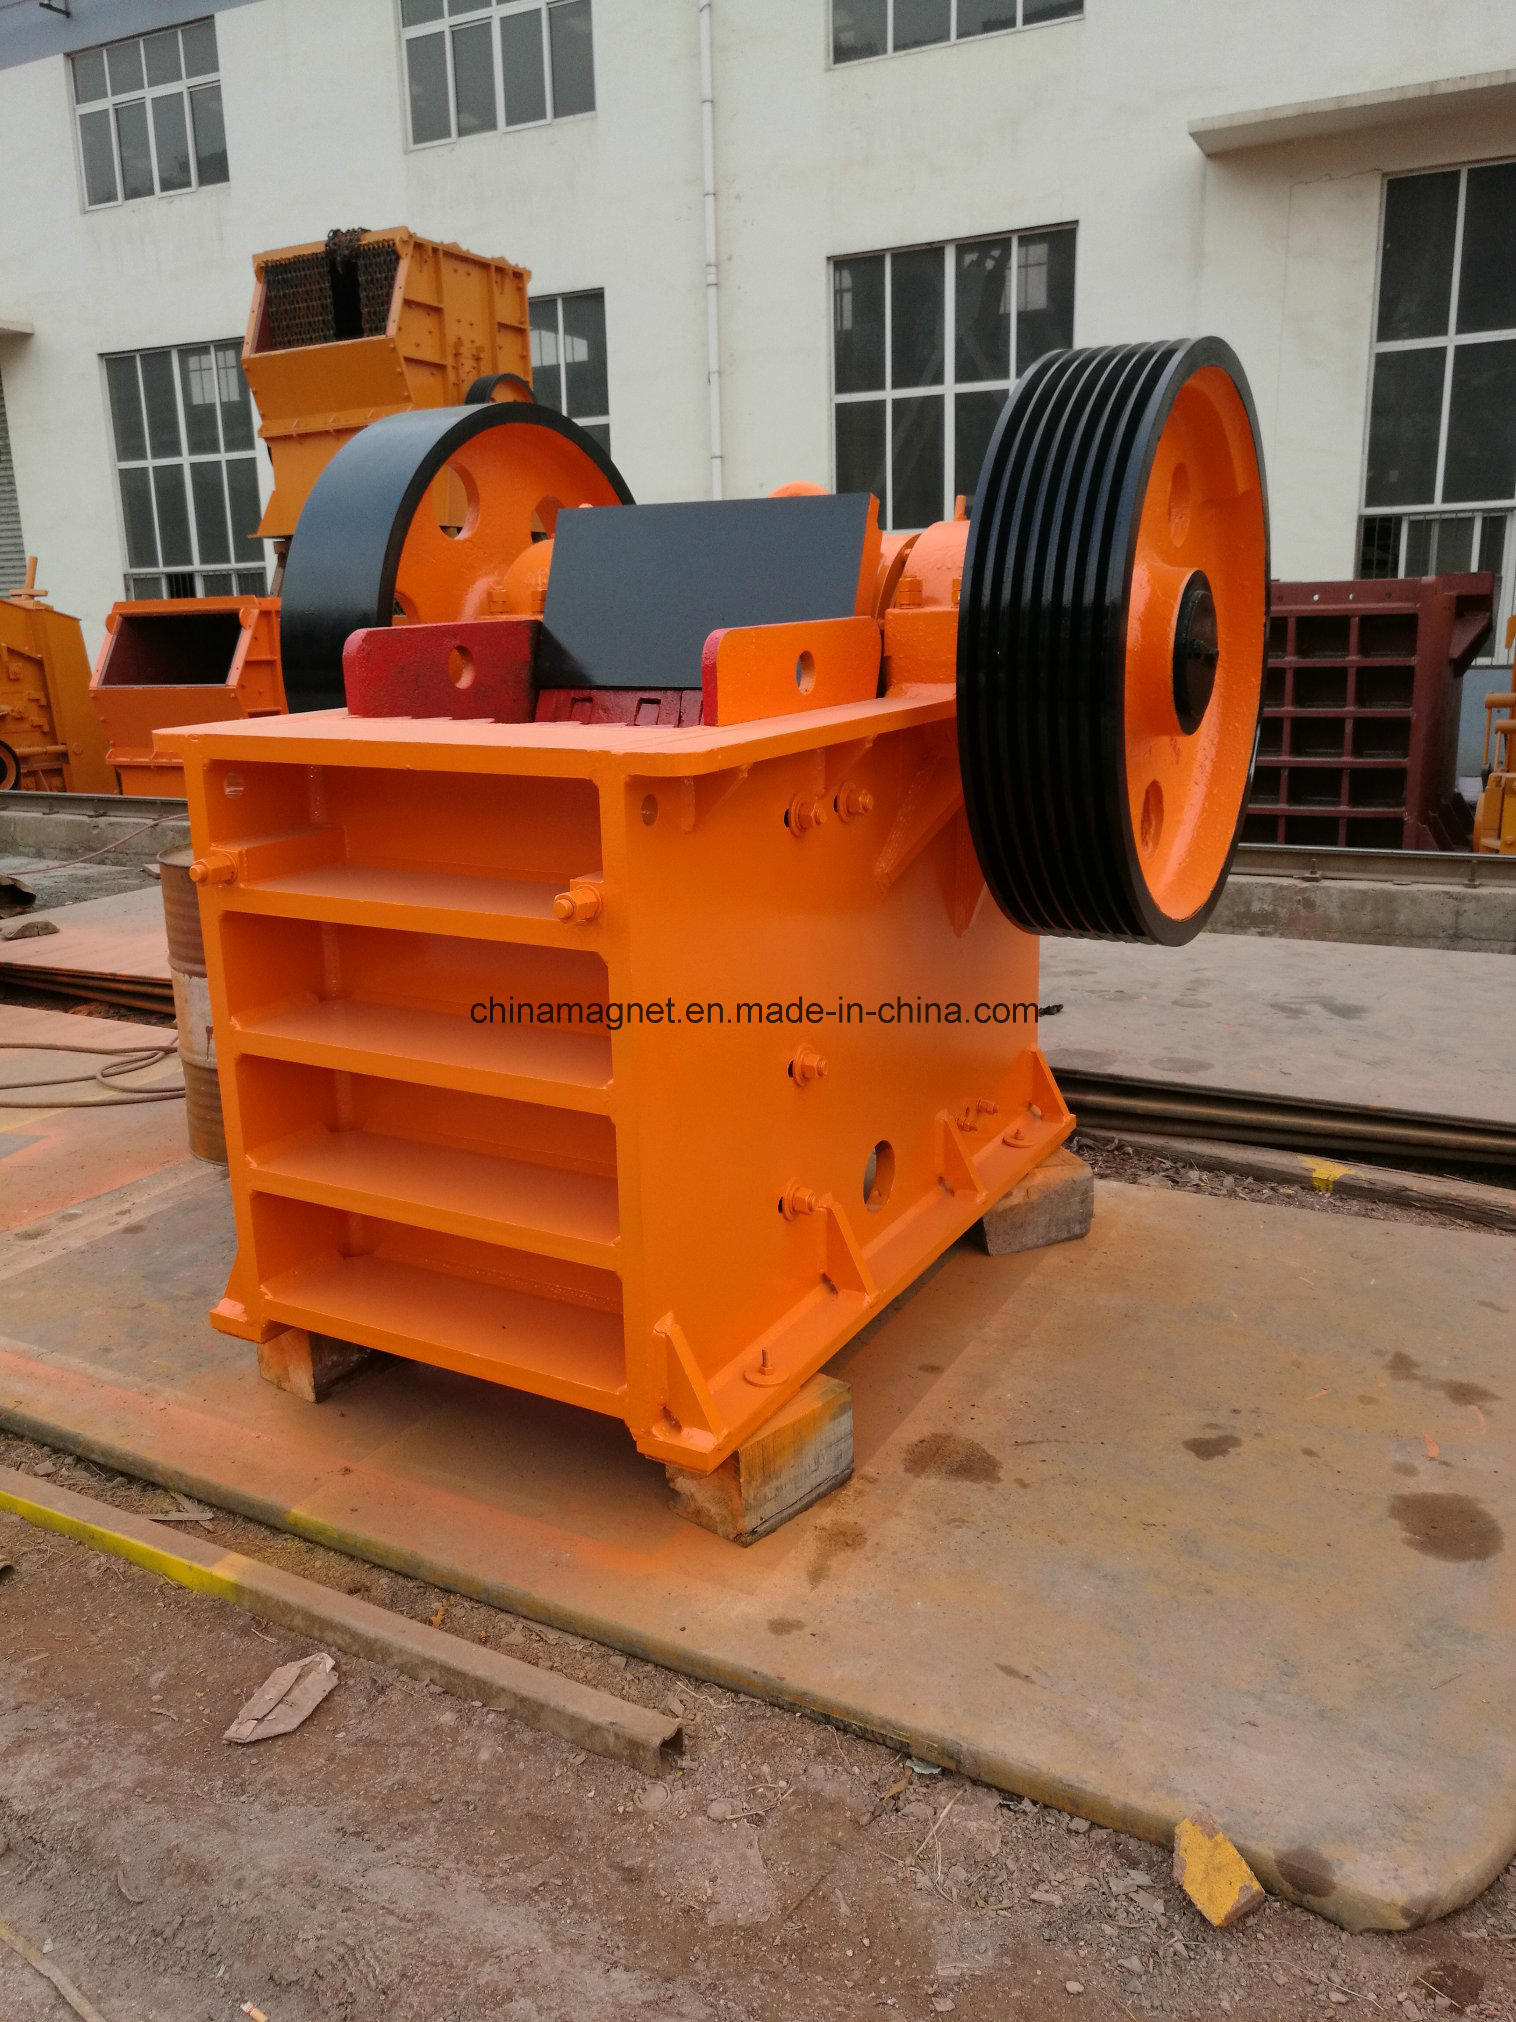 Advanced PE Jaw / Stone Crusher for Quarry/Construction /Limestone/Iron Ore/Mine Ore /Copper Ore/Gravity Primary Crushing